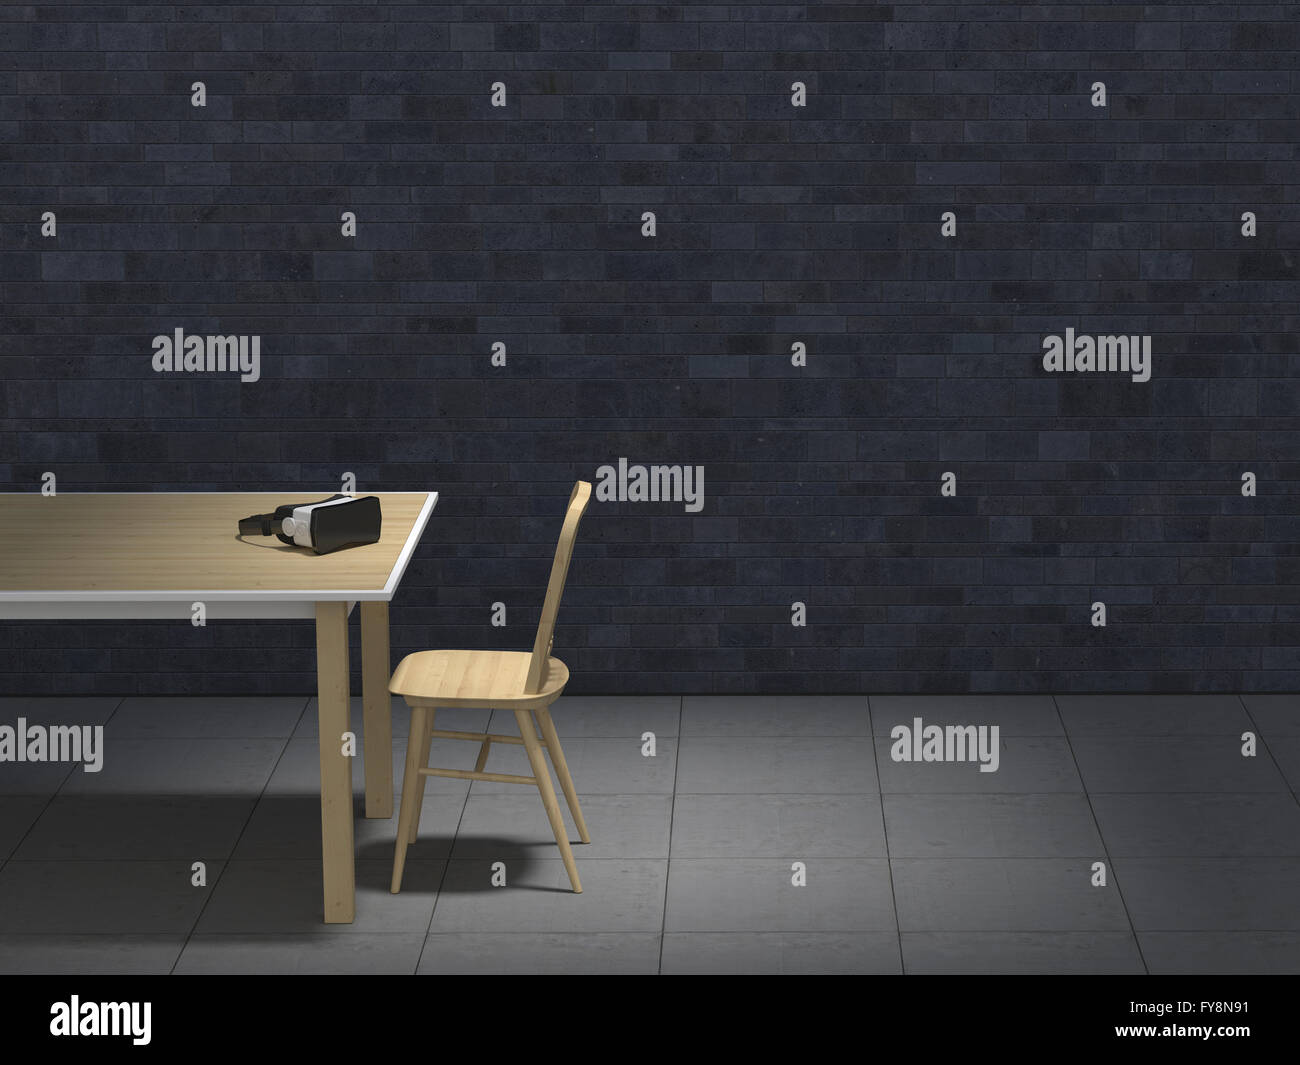 Table with VR glasses in darkened room, 3D-Rendering - Stock Image